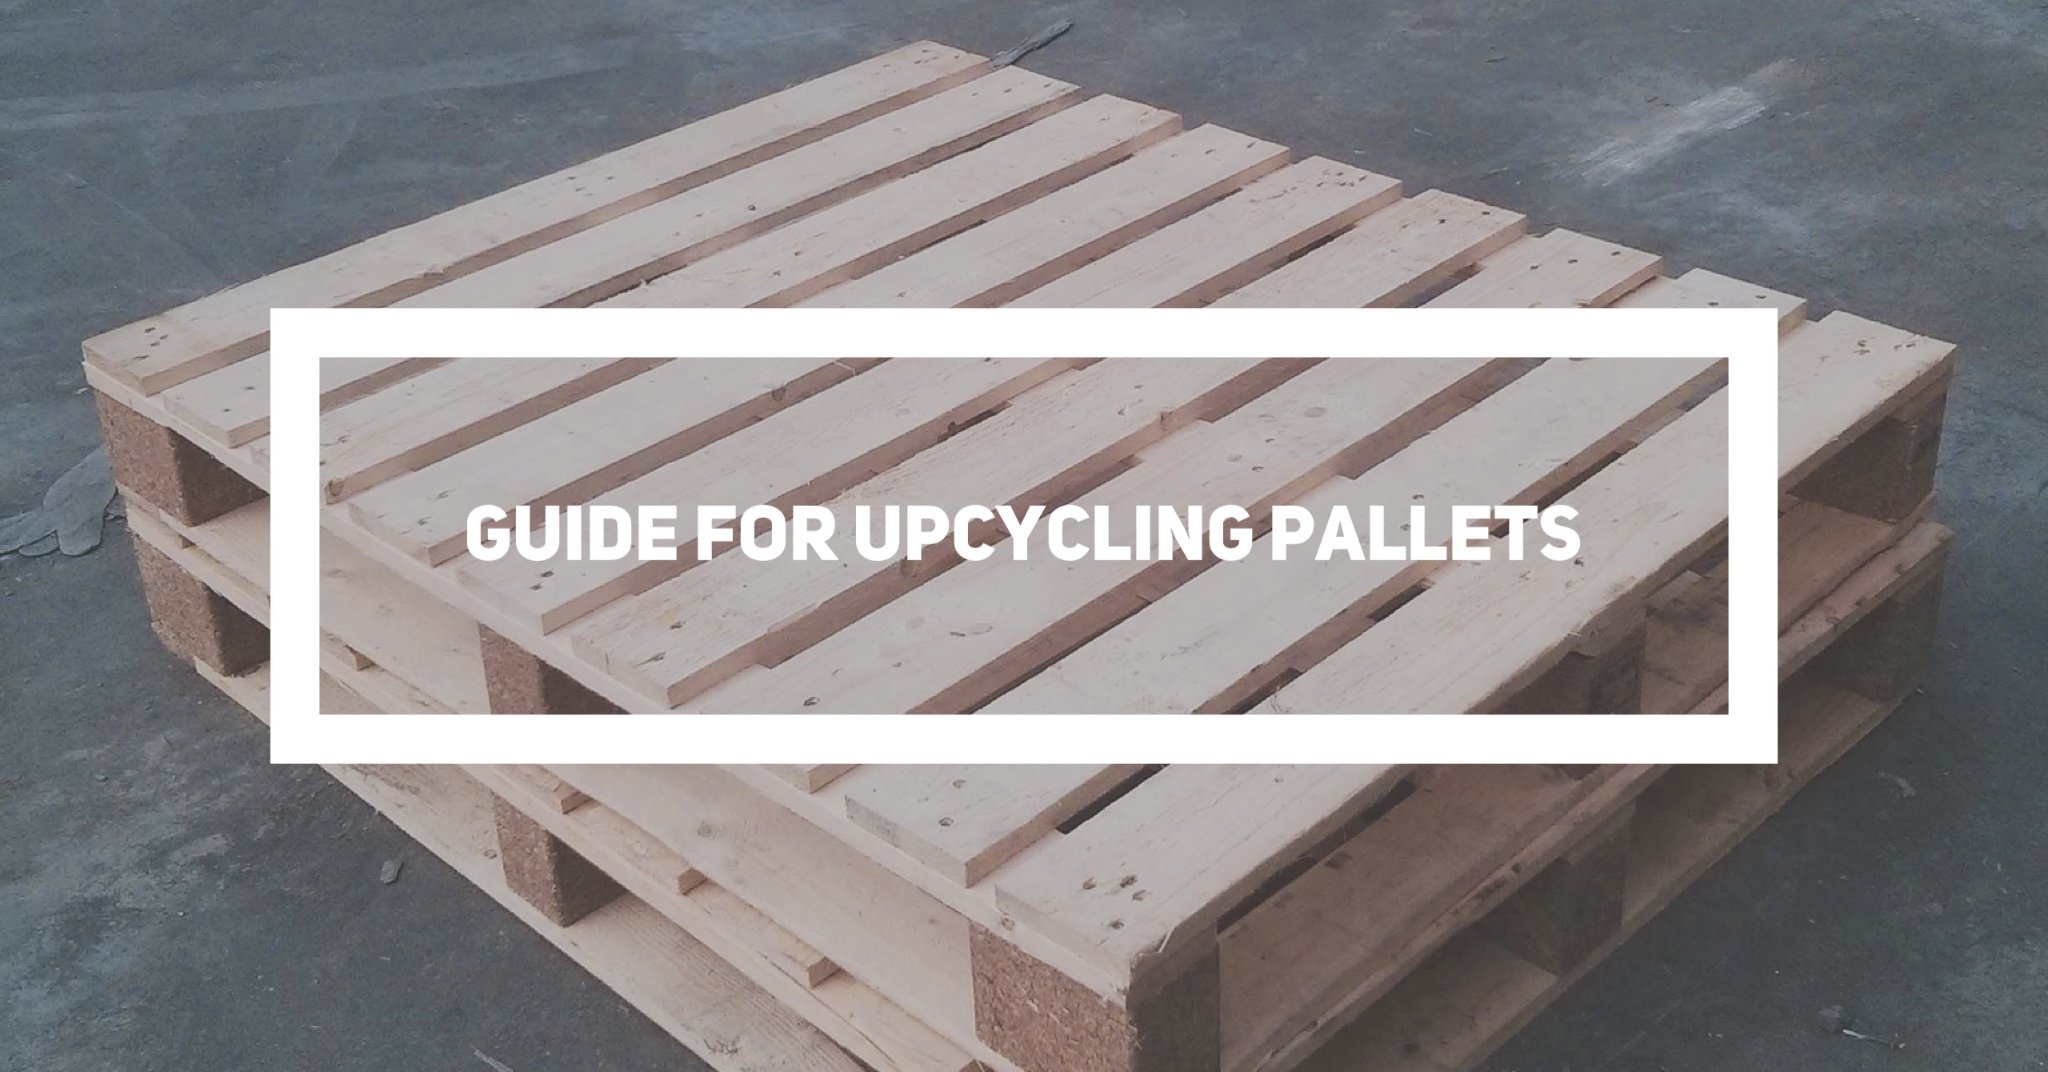 upcycling pallets guide